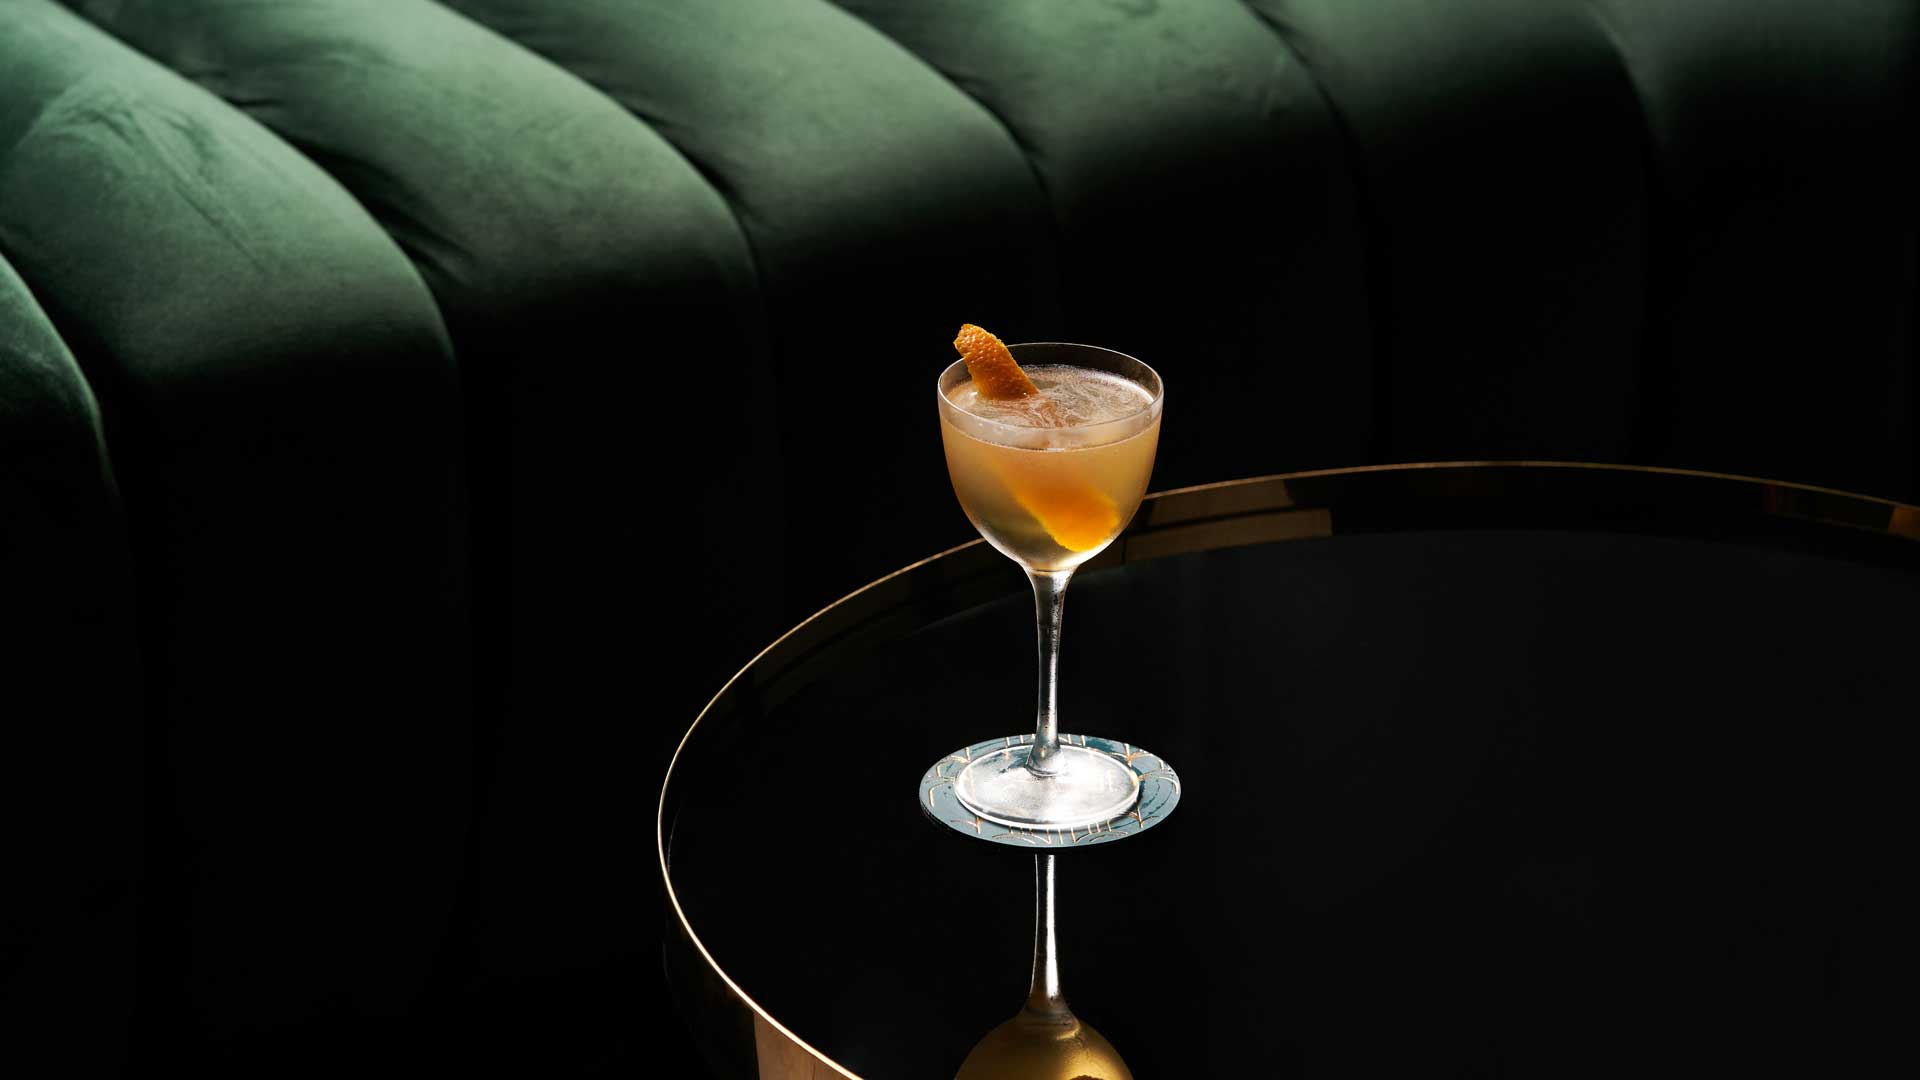 Angel-face-cocktail-ricetta-ingredienti-dosi-Coqtail-Milano